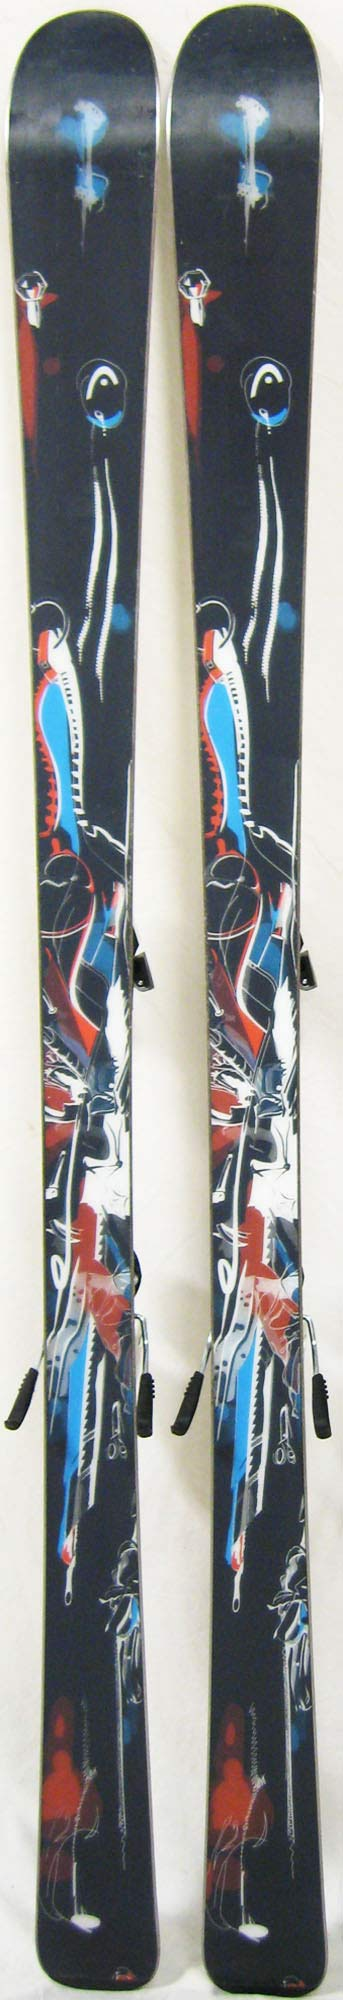 Bases of 2012 Head Mya No. 2 LR Skis For Sale